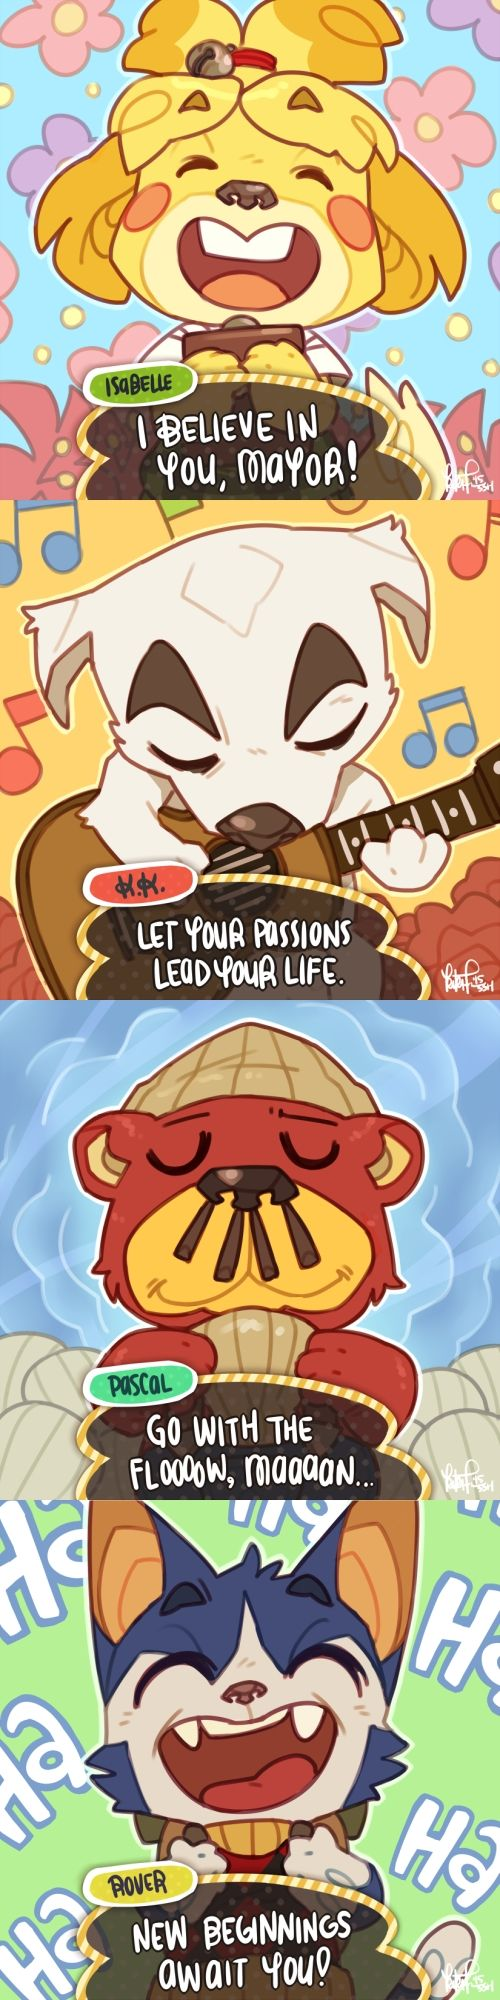 (Animal Crossing) Let the animals of Animal Crossing motivate you! ♡